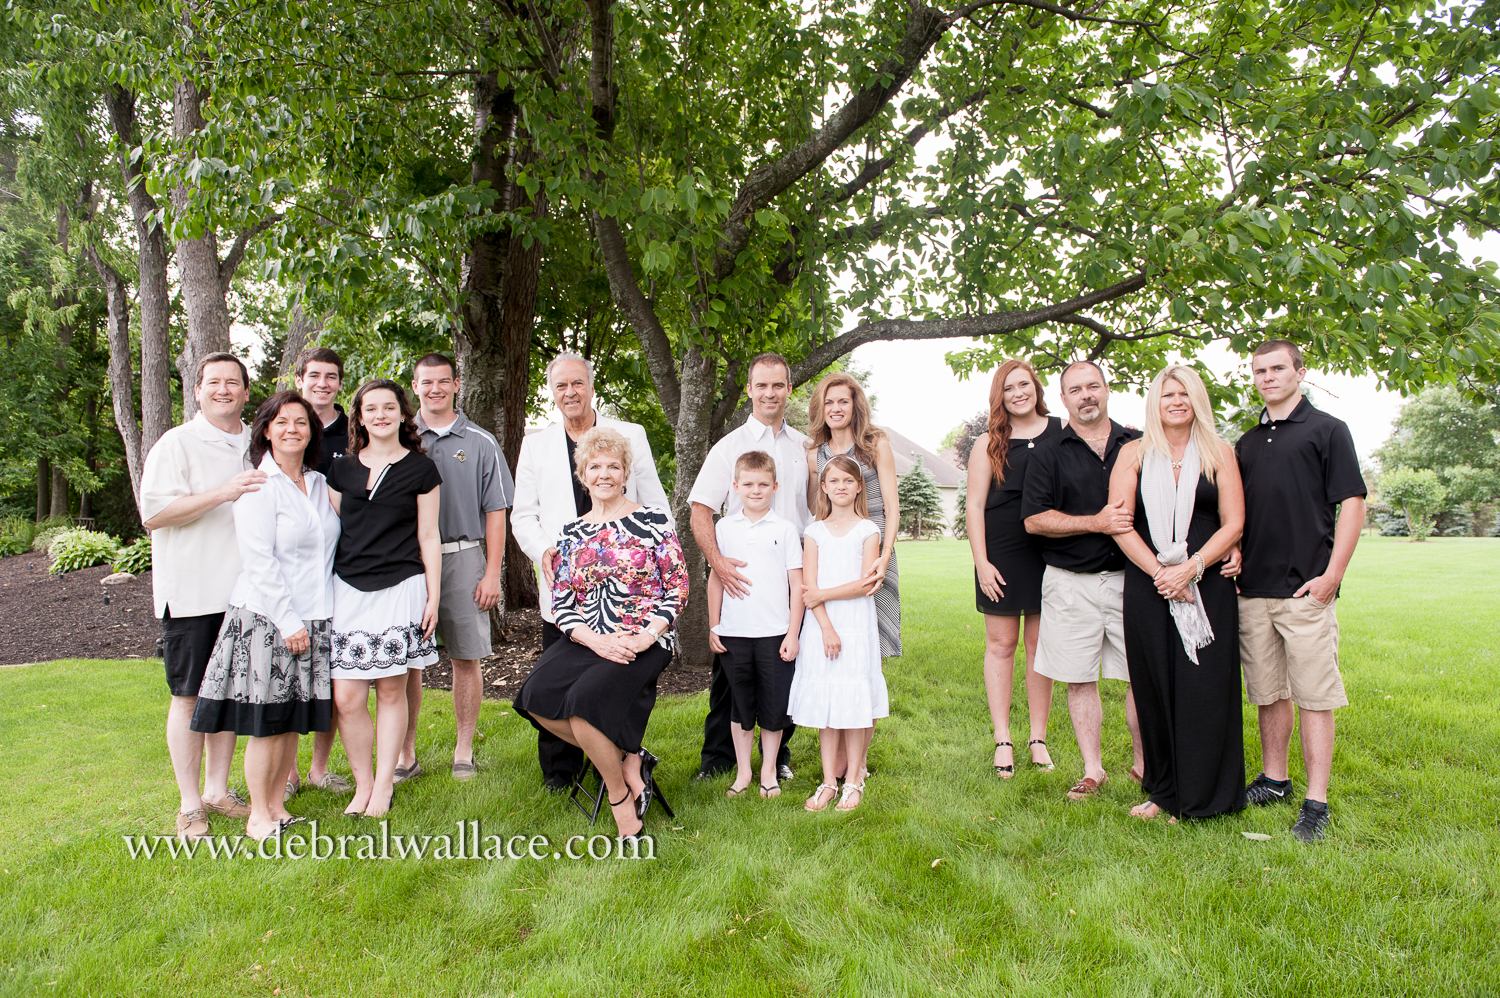 Extended family portrait photography penfield ny-6261